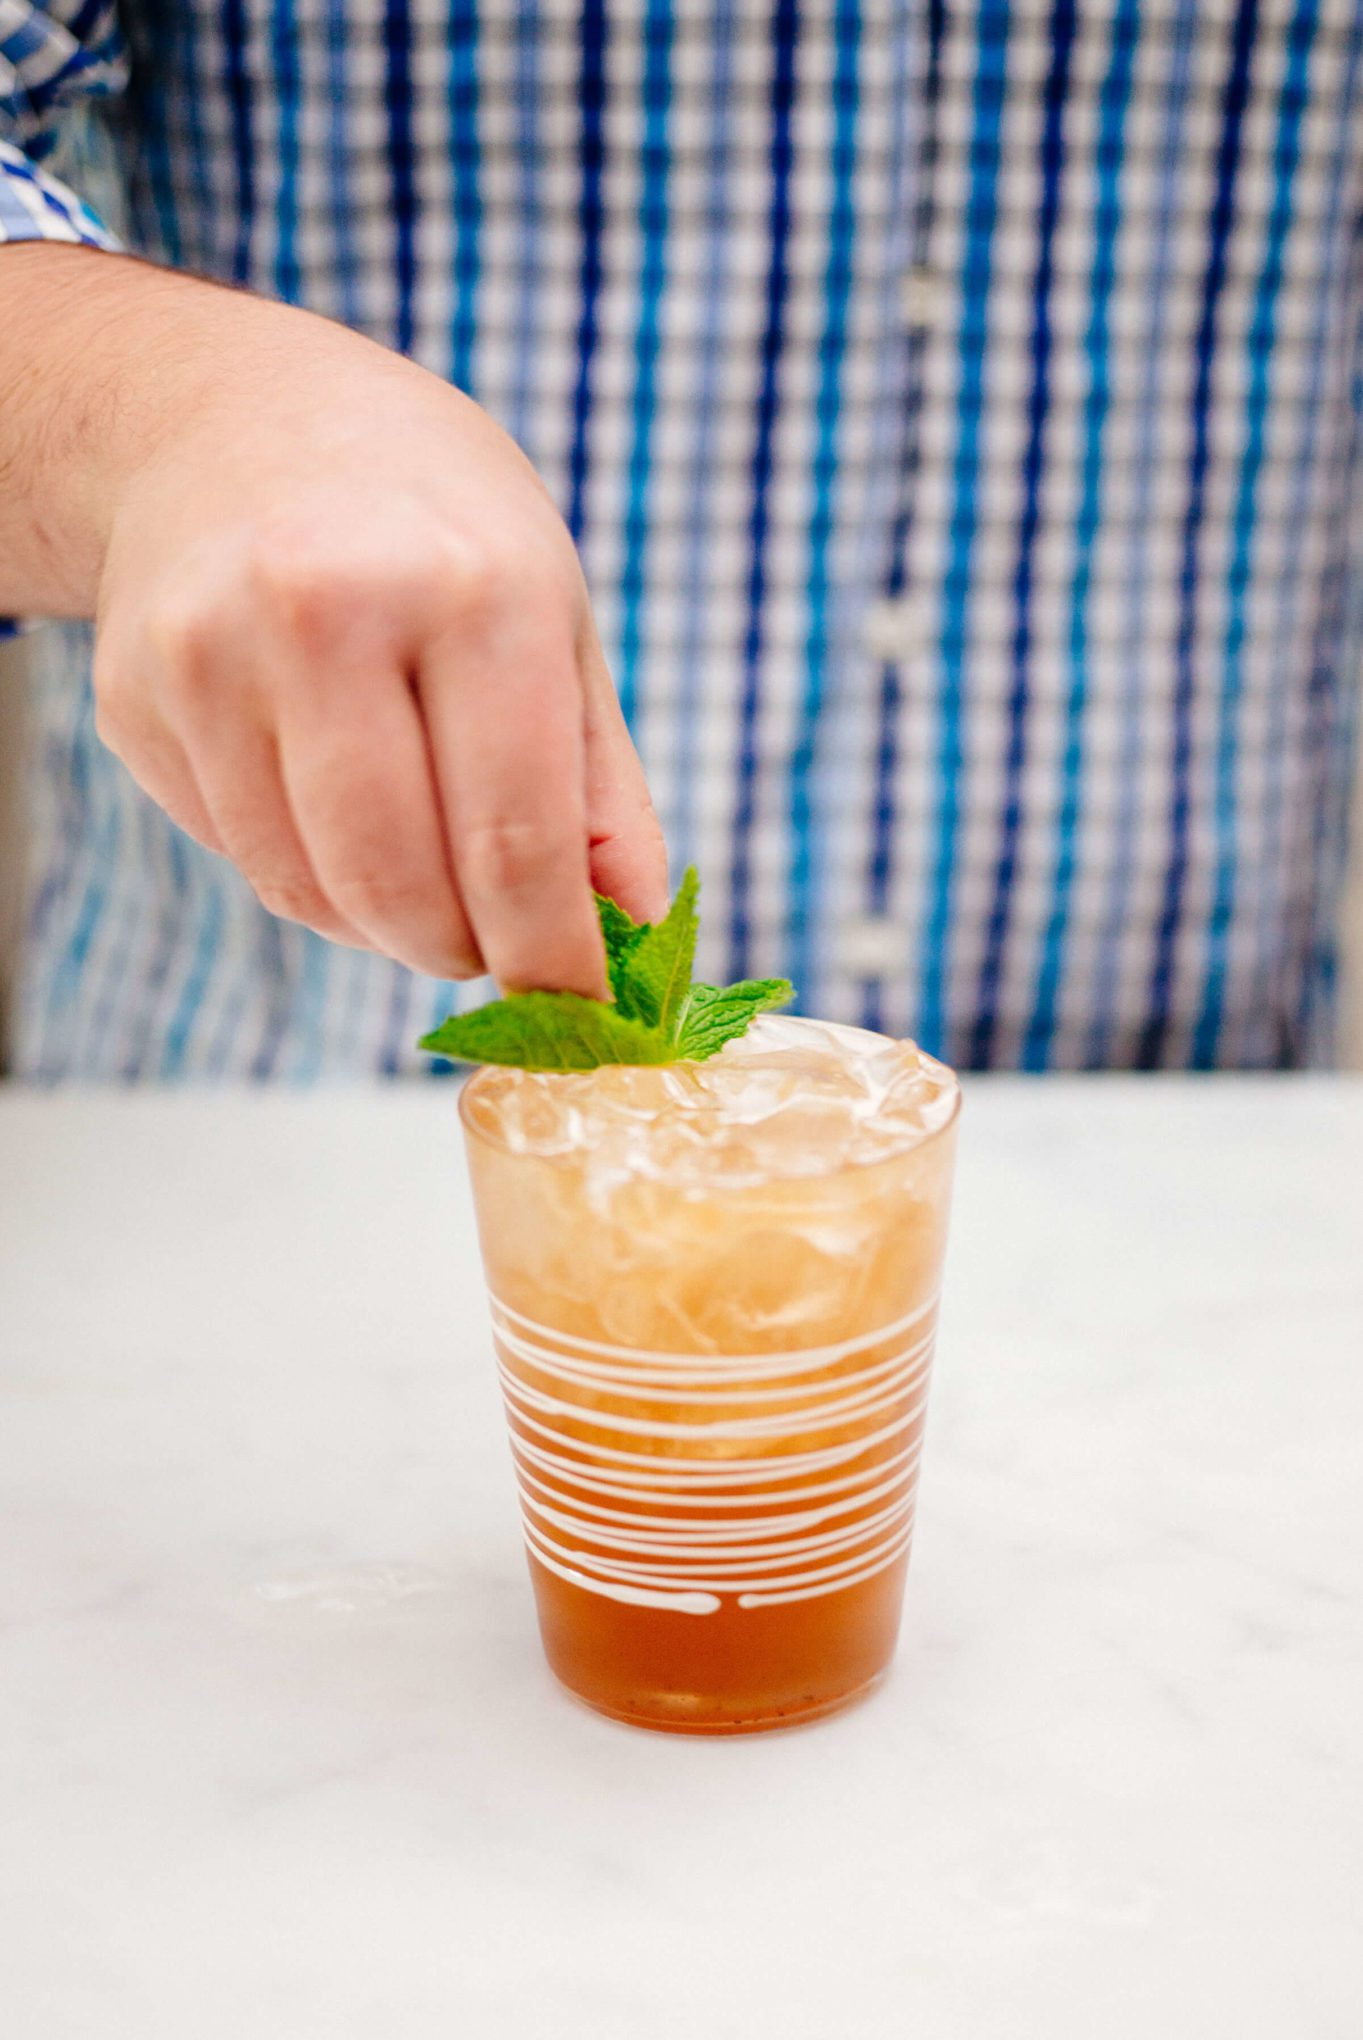 The Taste SF is garnishing a jack and ginger cocktail with pomegranate ginger ale with a sprig of mint